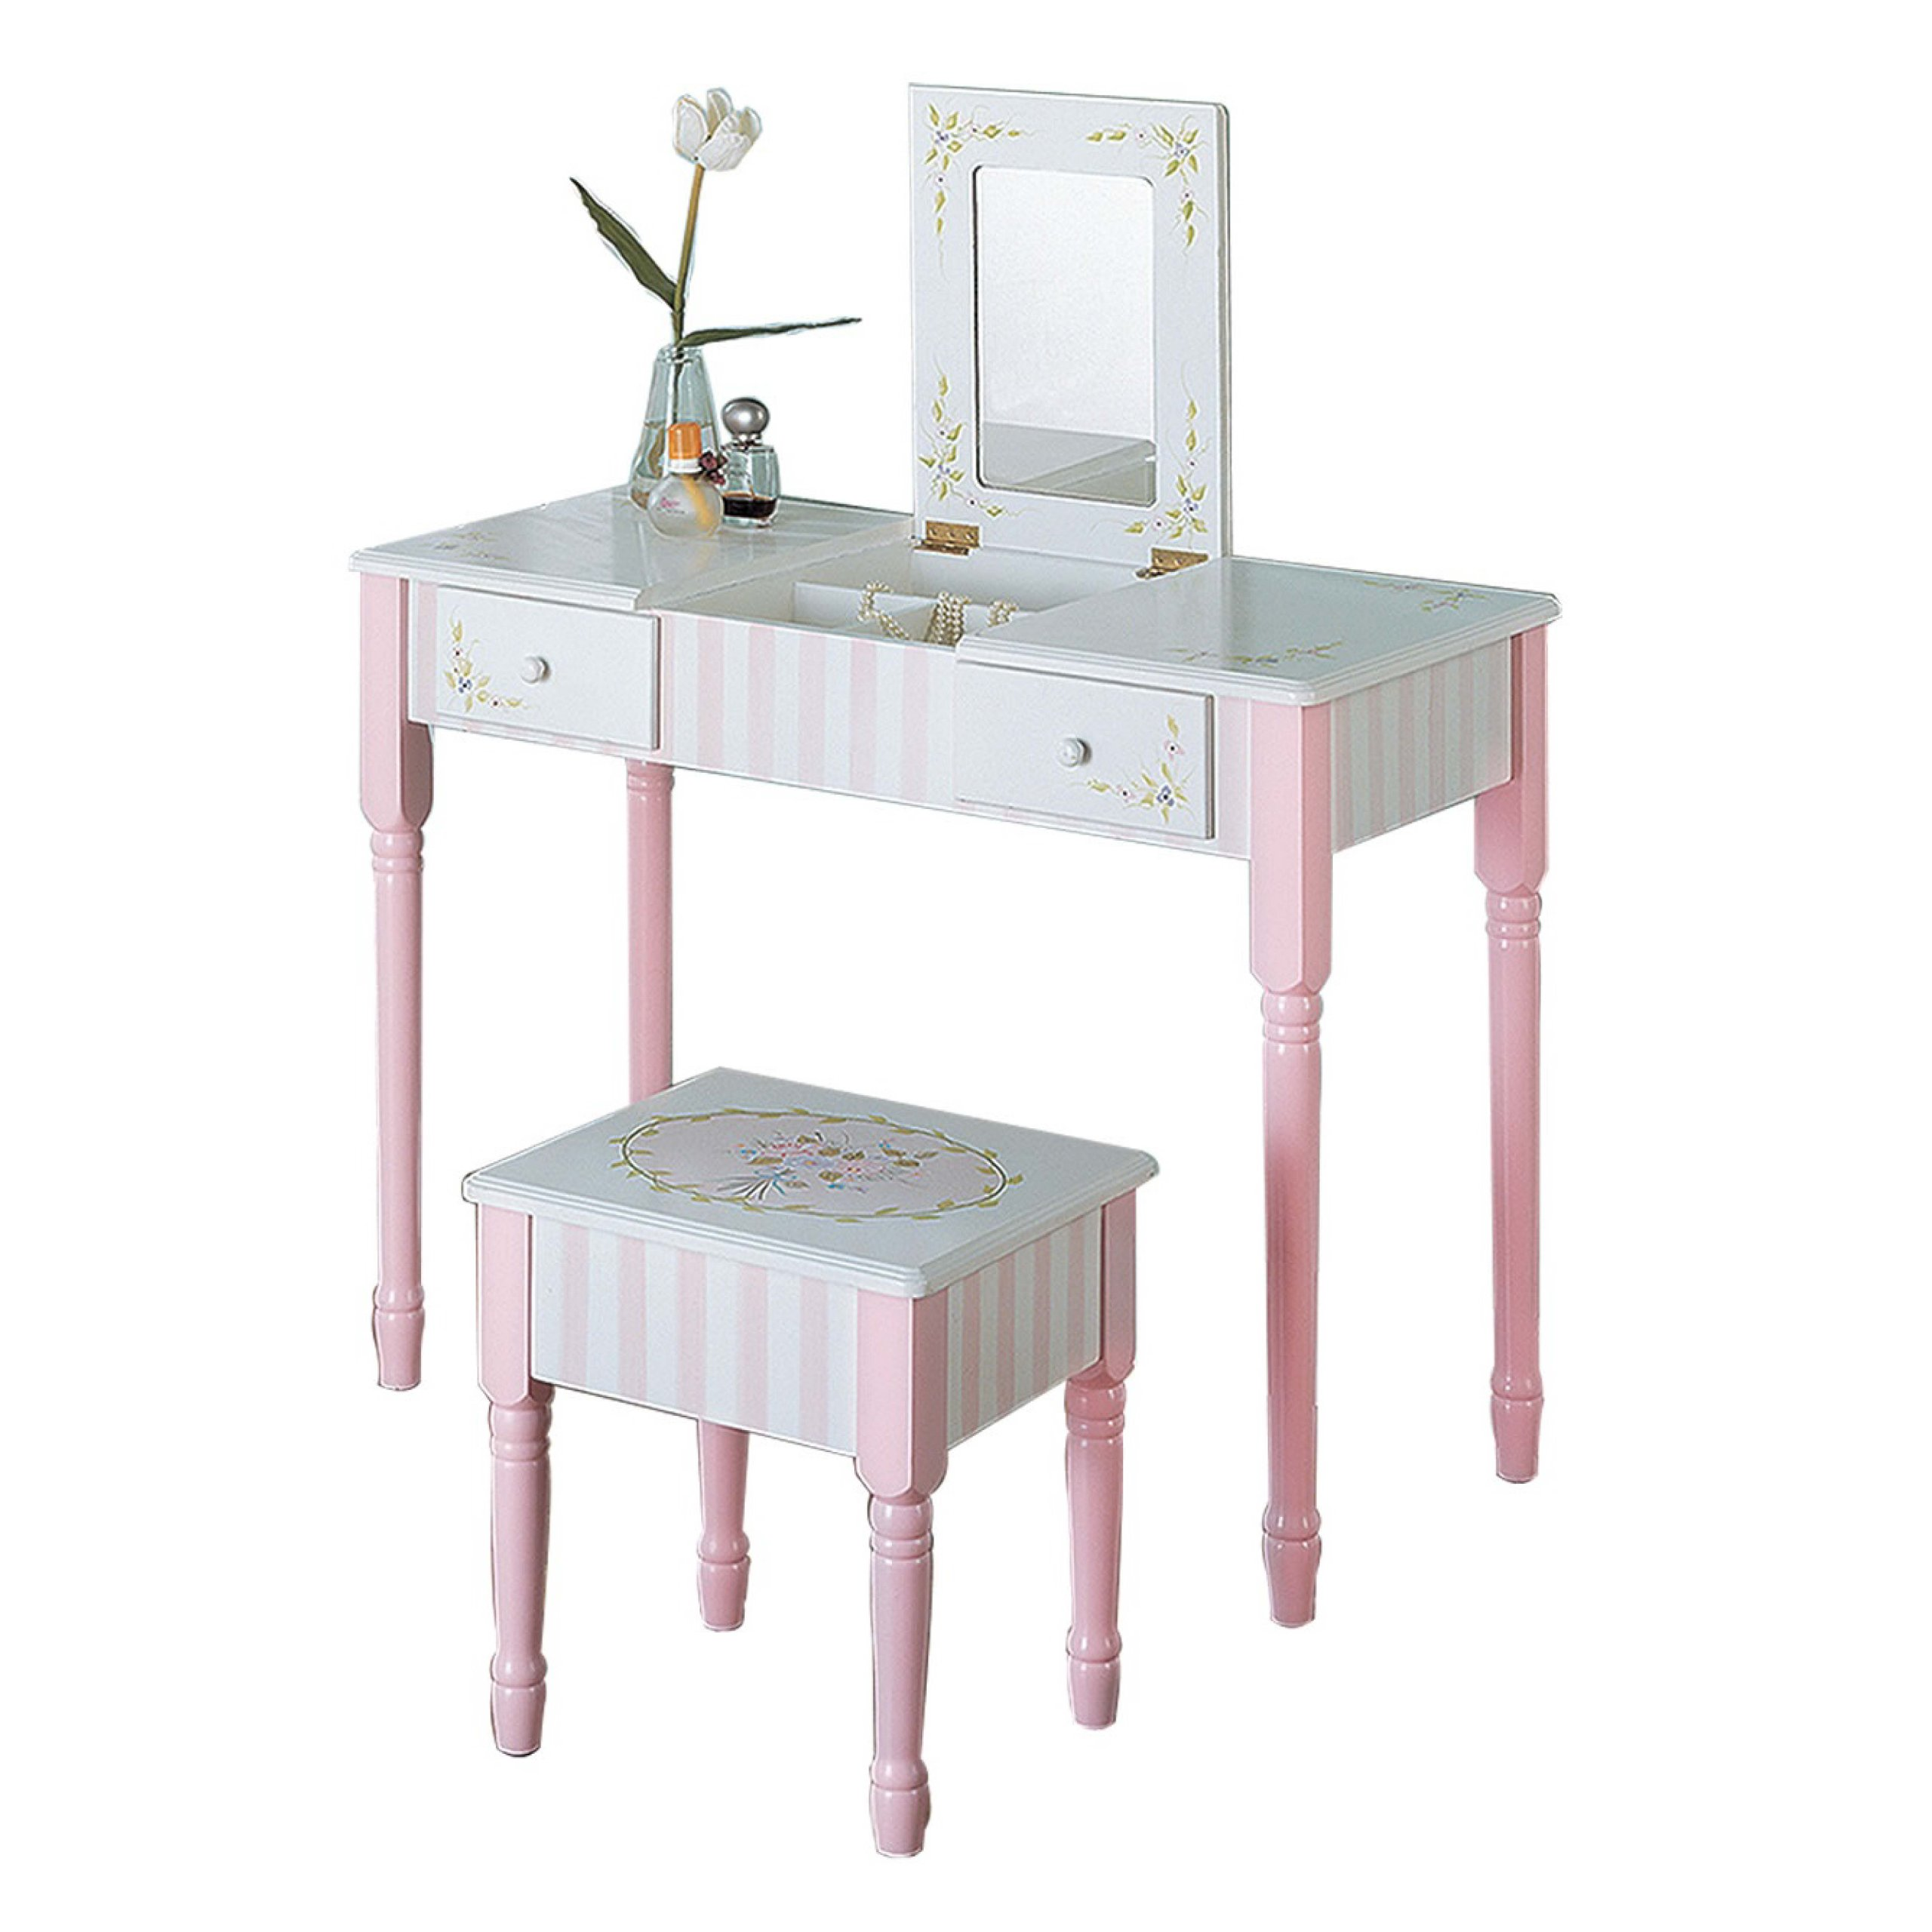 Bouquet Thematic Kids Flip Top Mirror Vanity Table and Stool Set Fantasy Fields Lead Free Water-based Paint Imagination Inspiring Hand Crafted /& Hand Painted Details   Non-Toxic